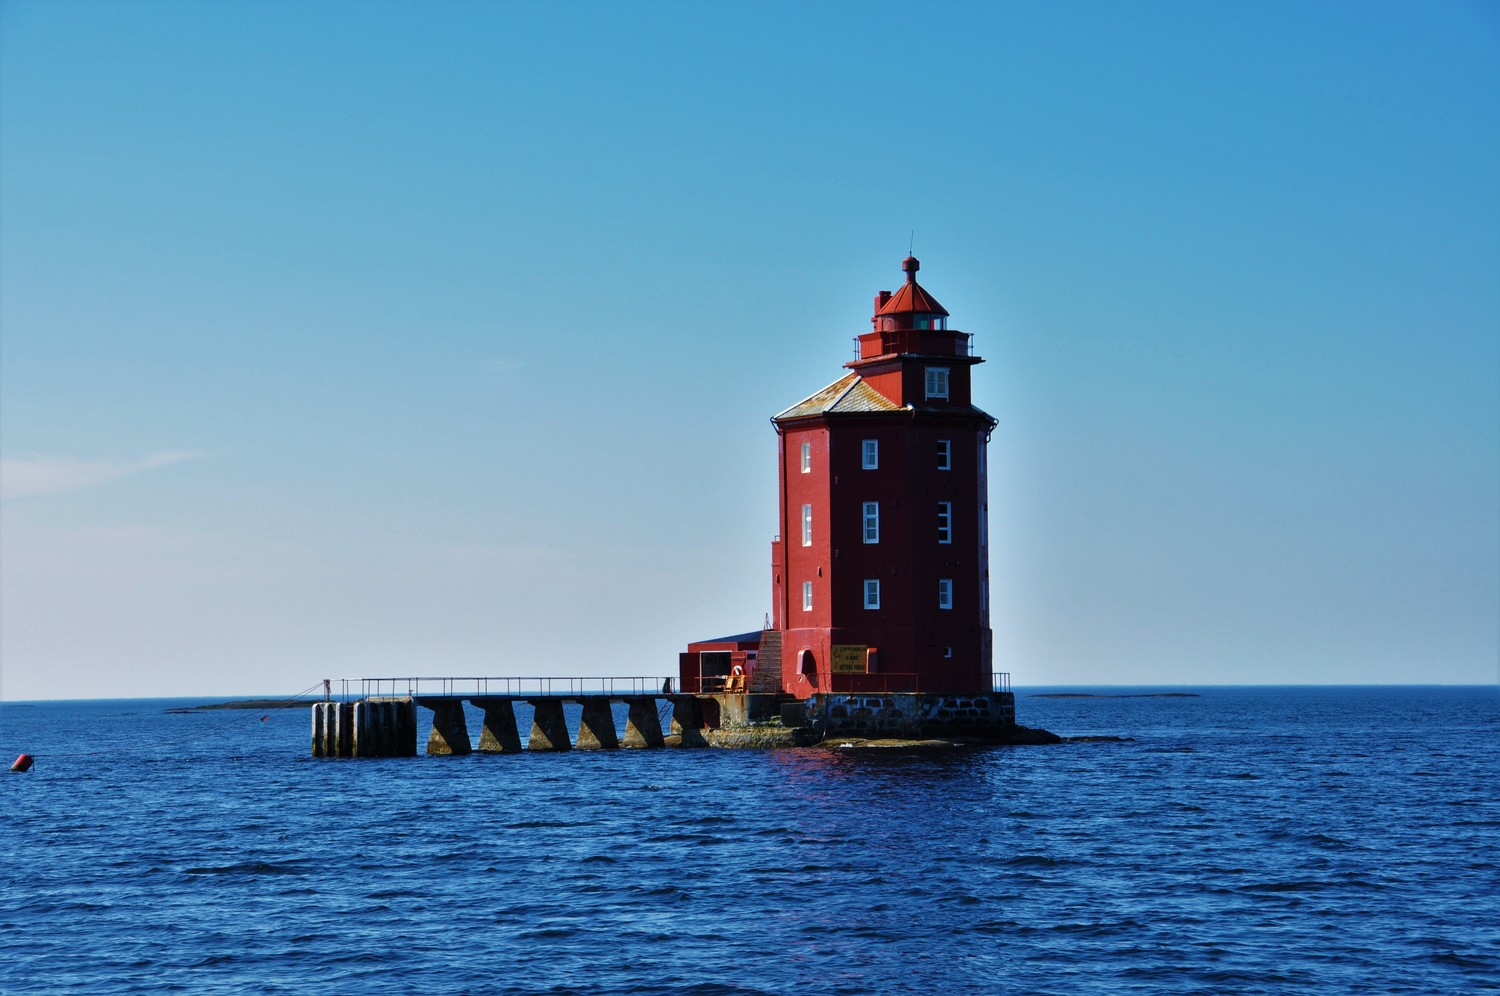 Kjeungskjær Lighthouse. Copyright: Crazy Coyote